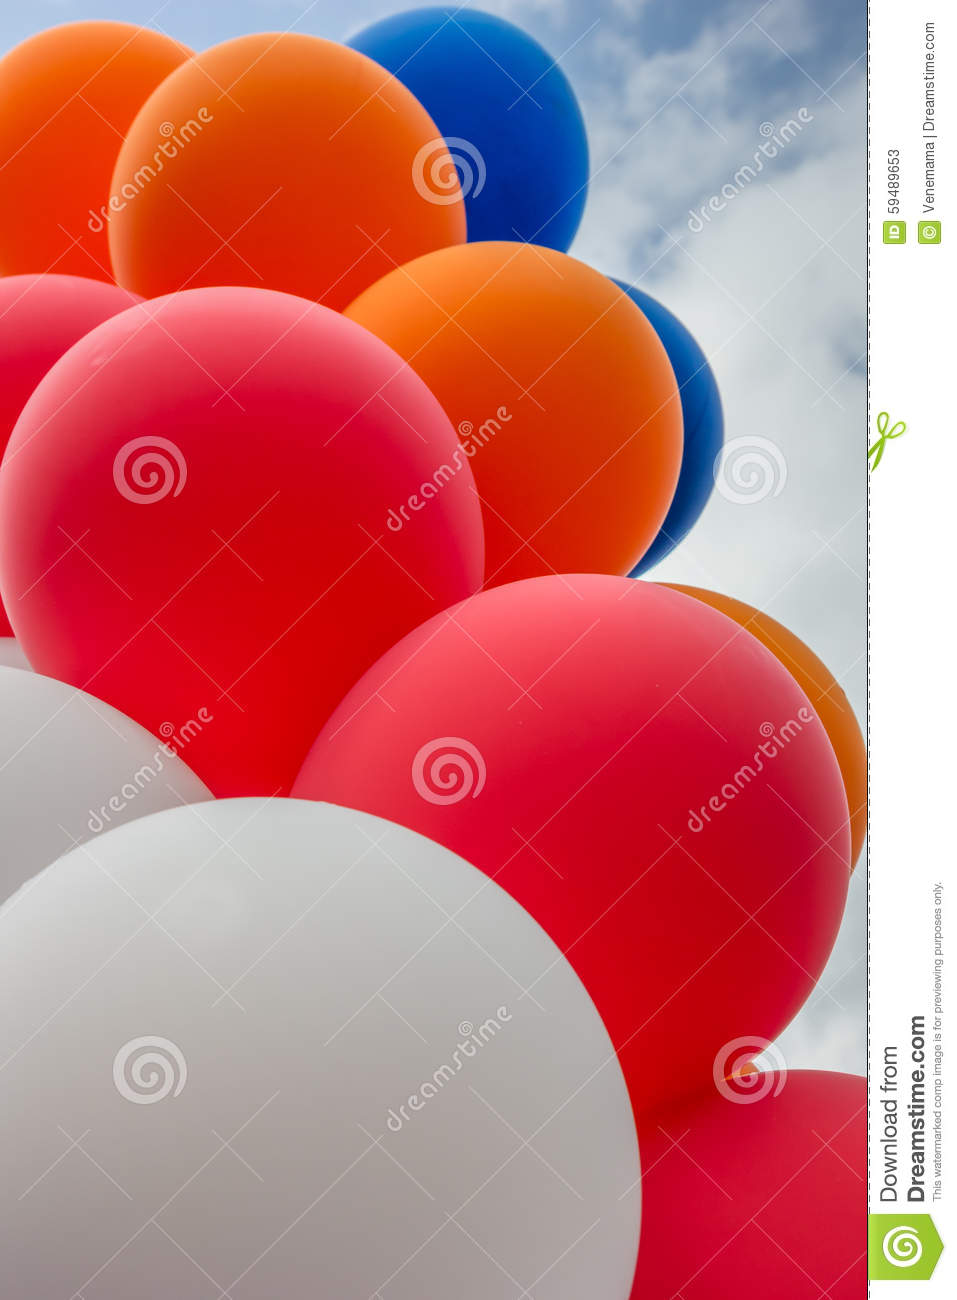 Balloons In The Colors Of The Dutch Flag Stock Image ...